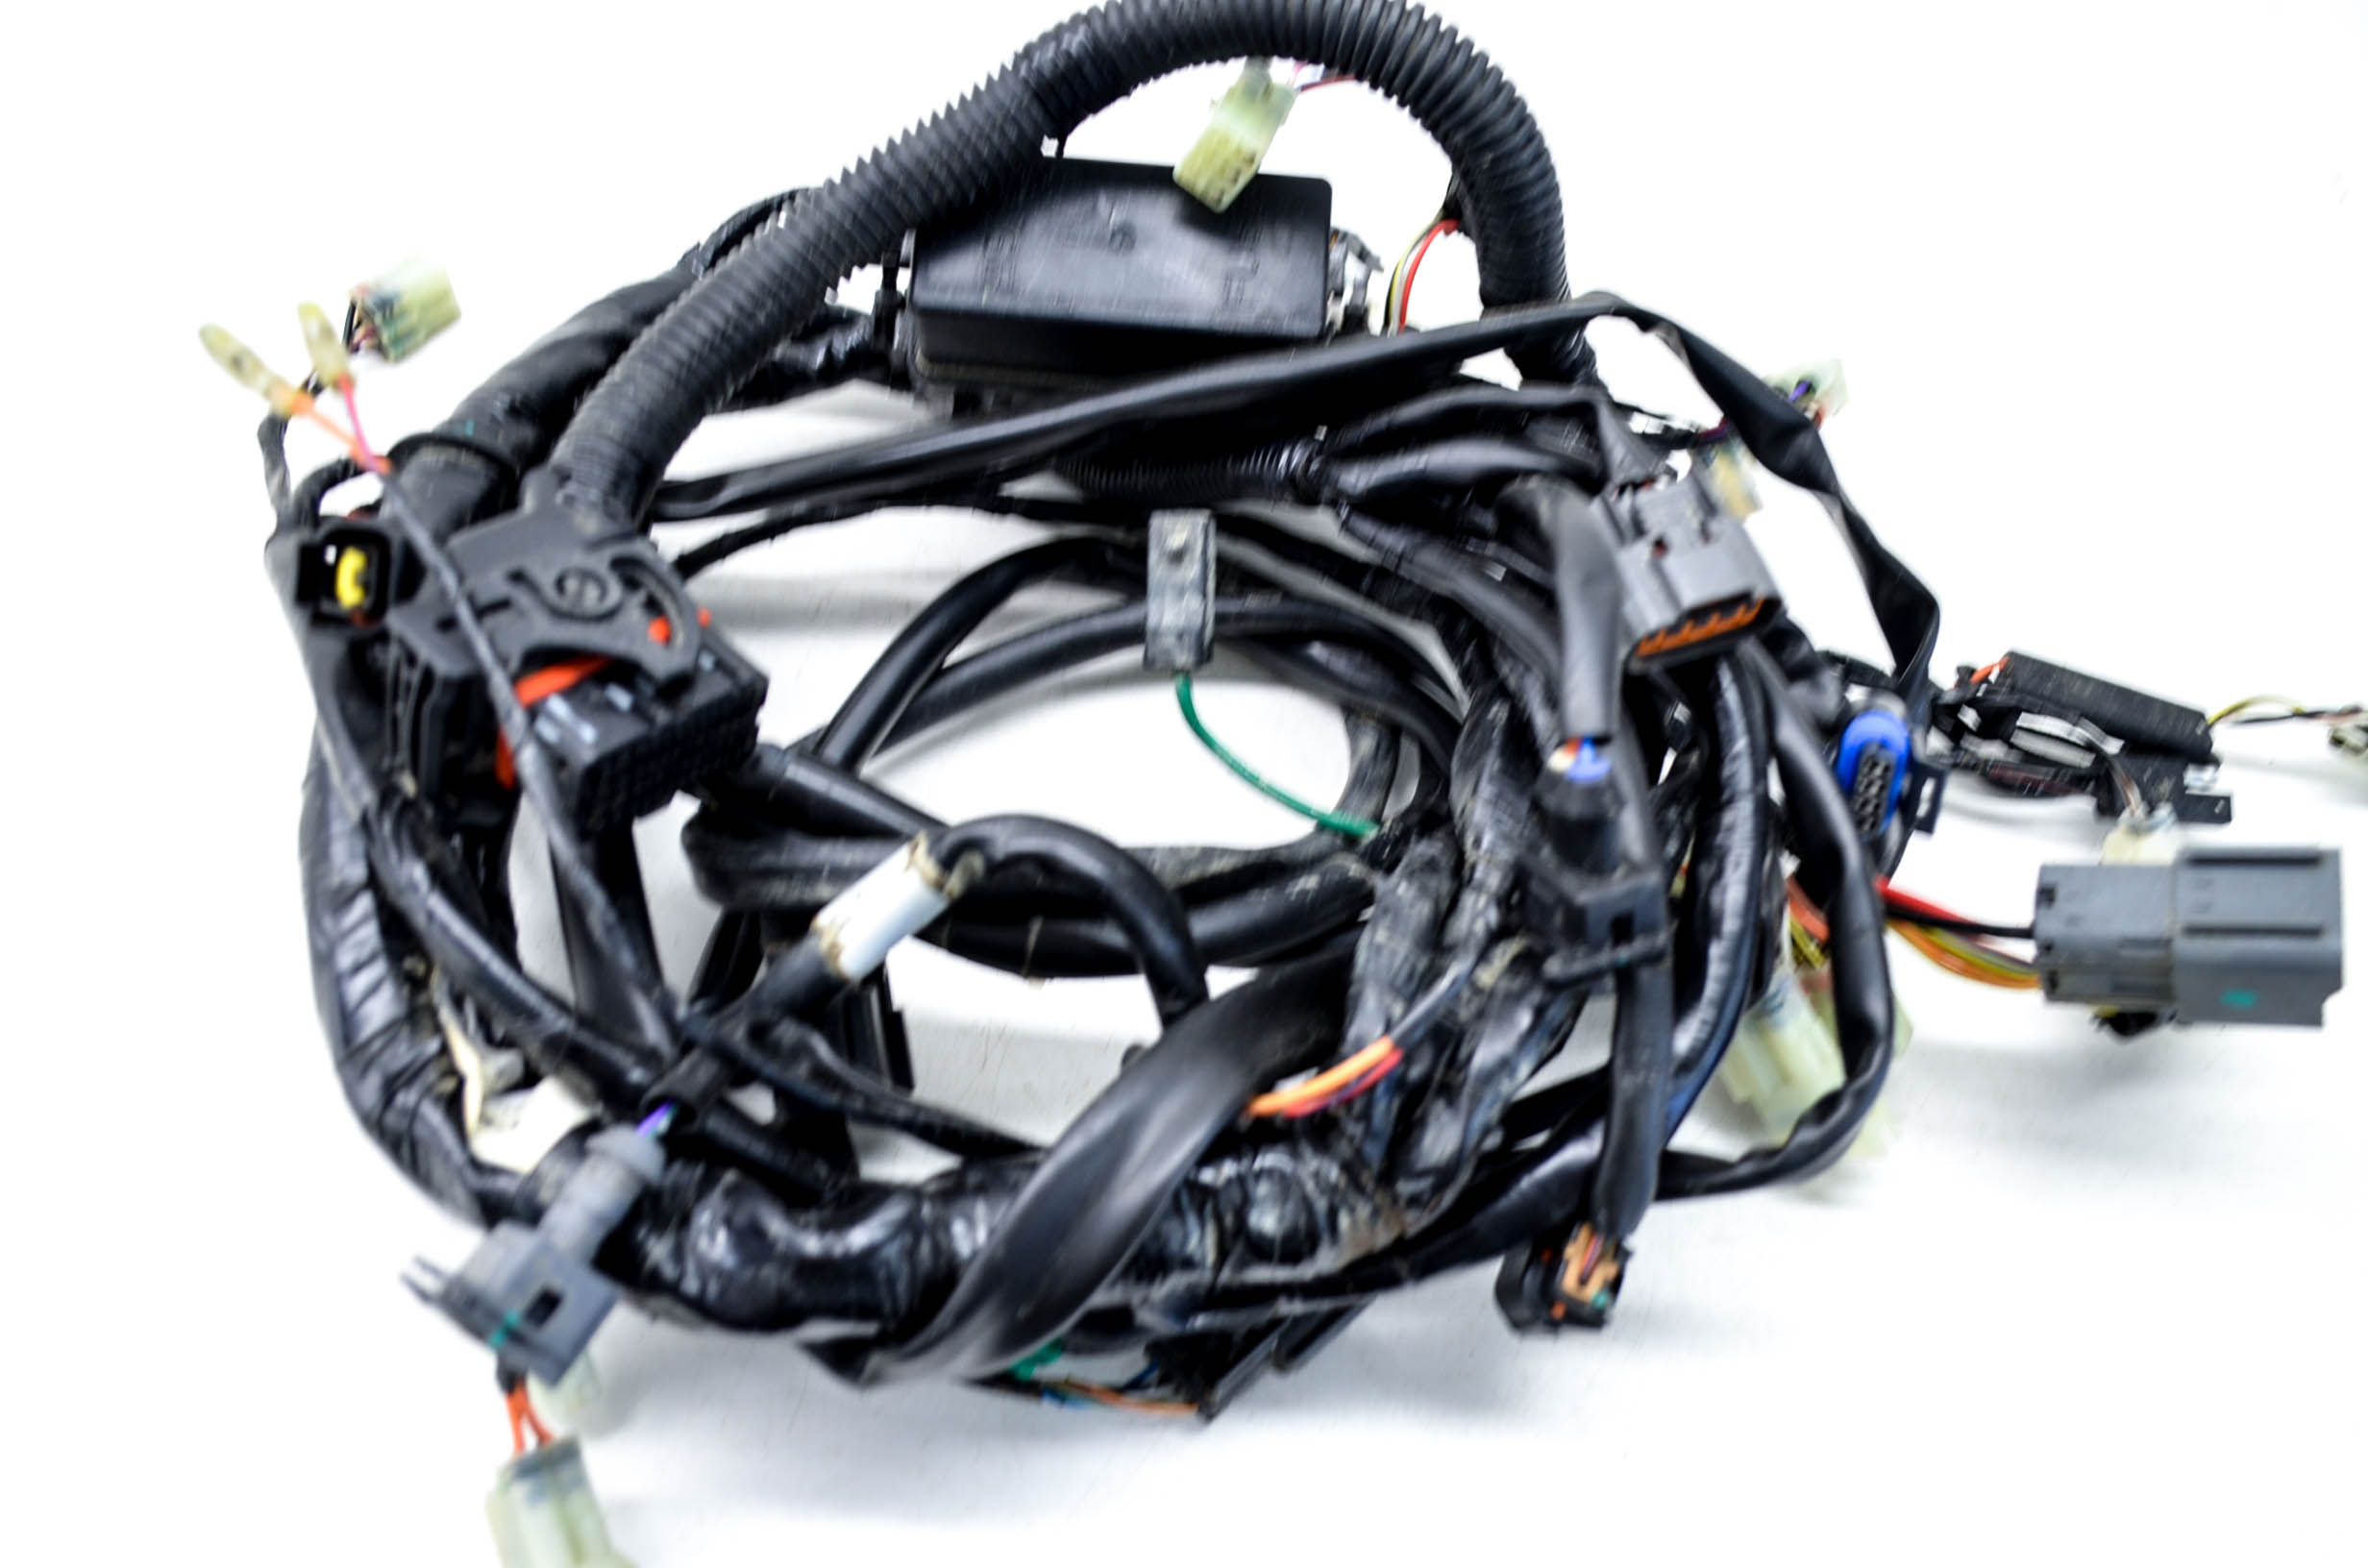 12 Arctic Cat XC450 4x4 Wire Harness Electrical Wiring | eBay